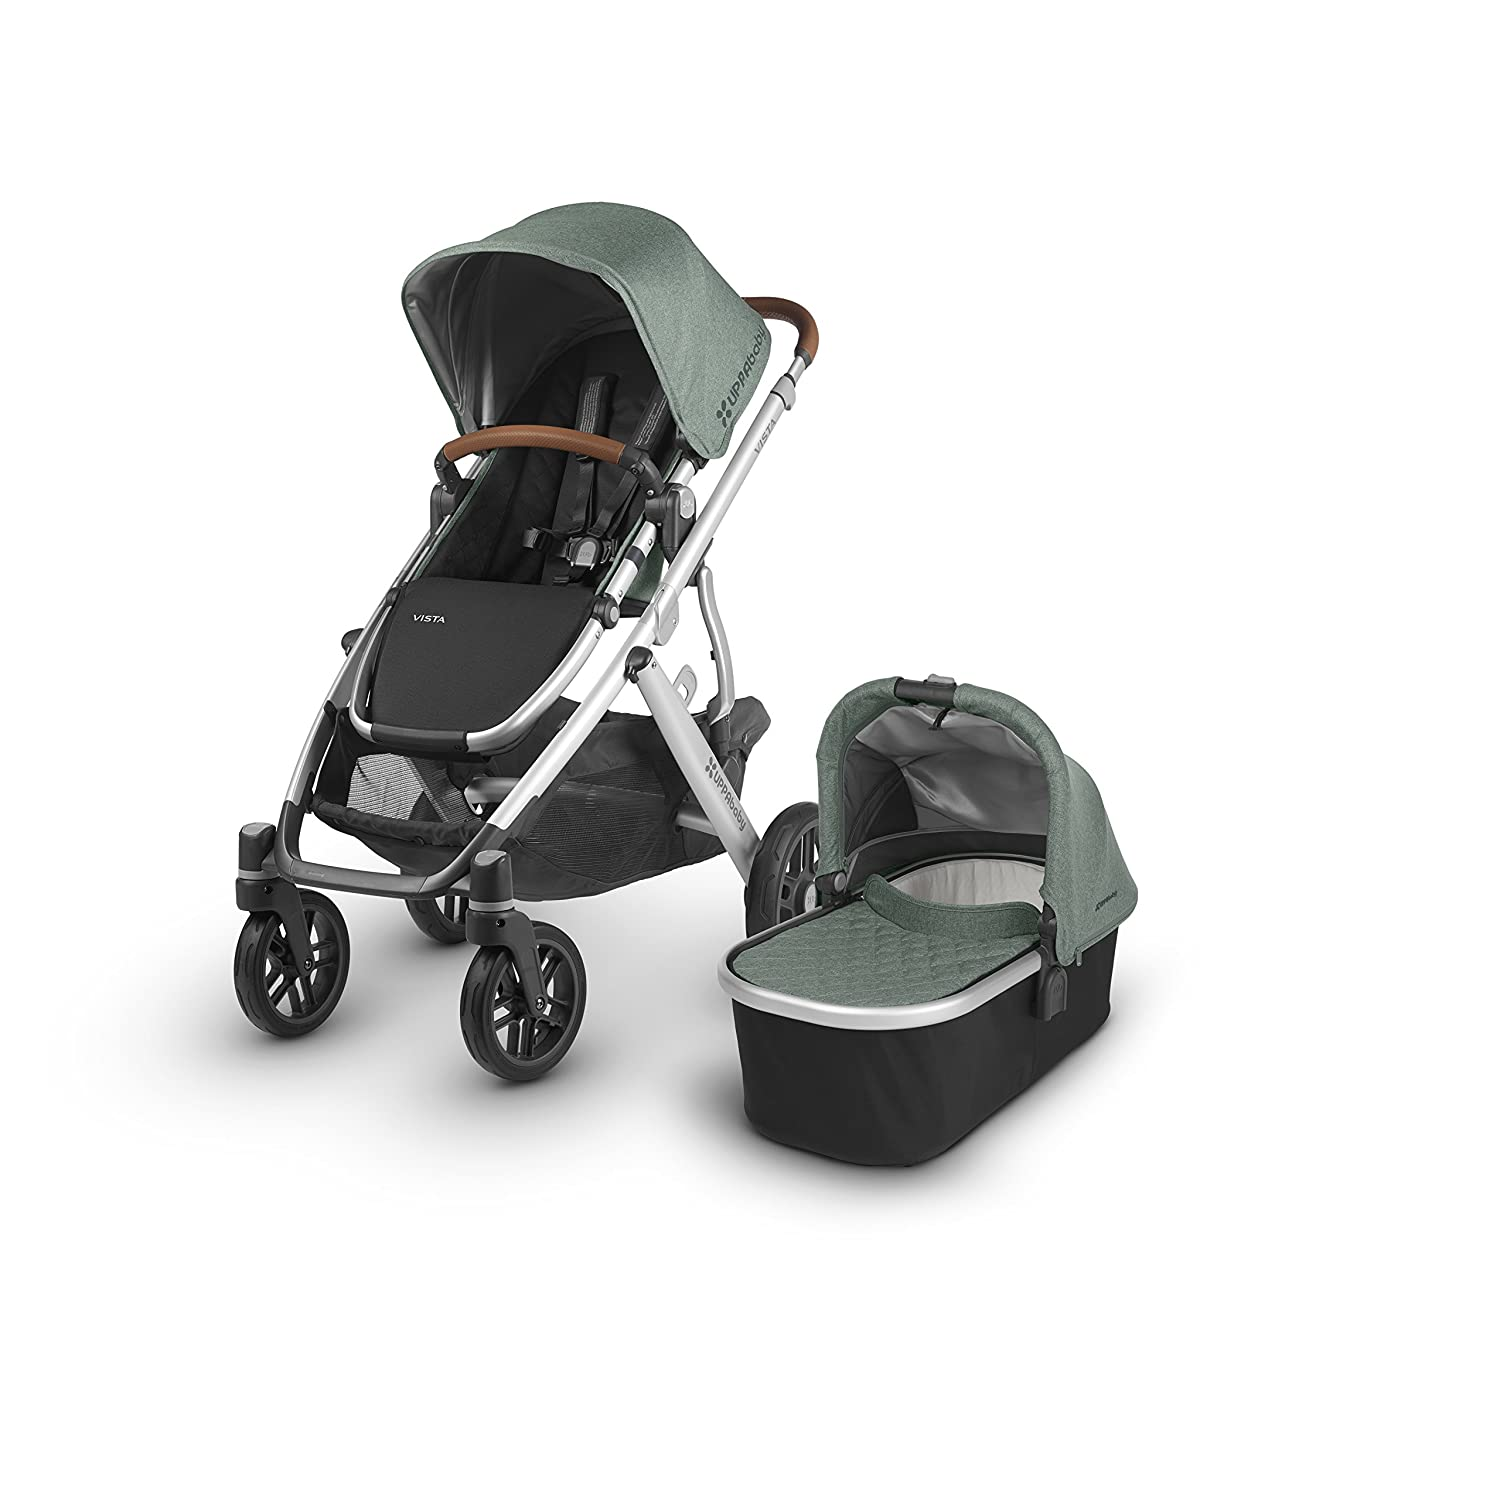 2018 UPPAbaby Vista Stroller - Emmett (Green Melange/Silver/Saddle Leather) 81i7aivePhL